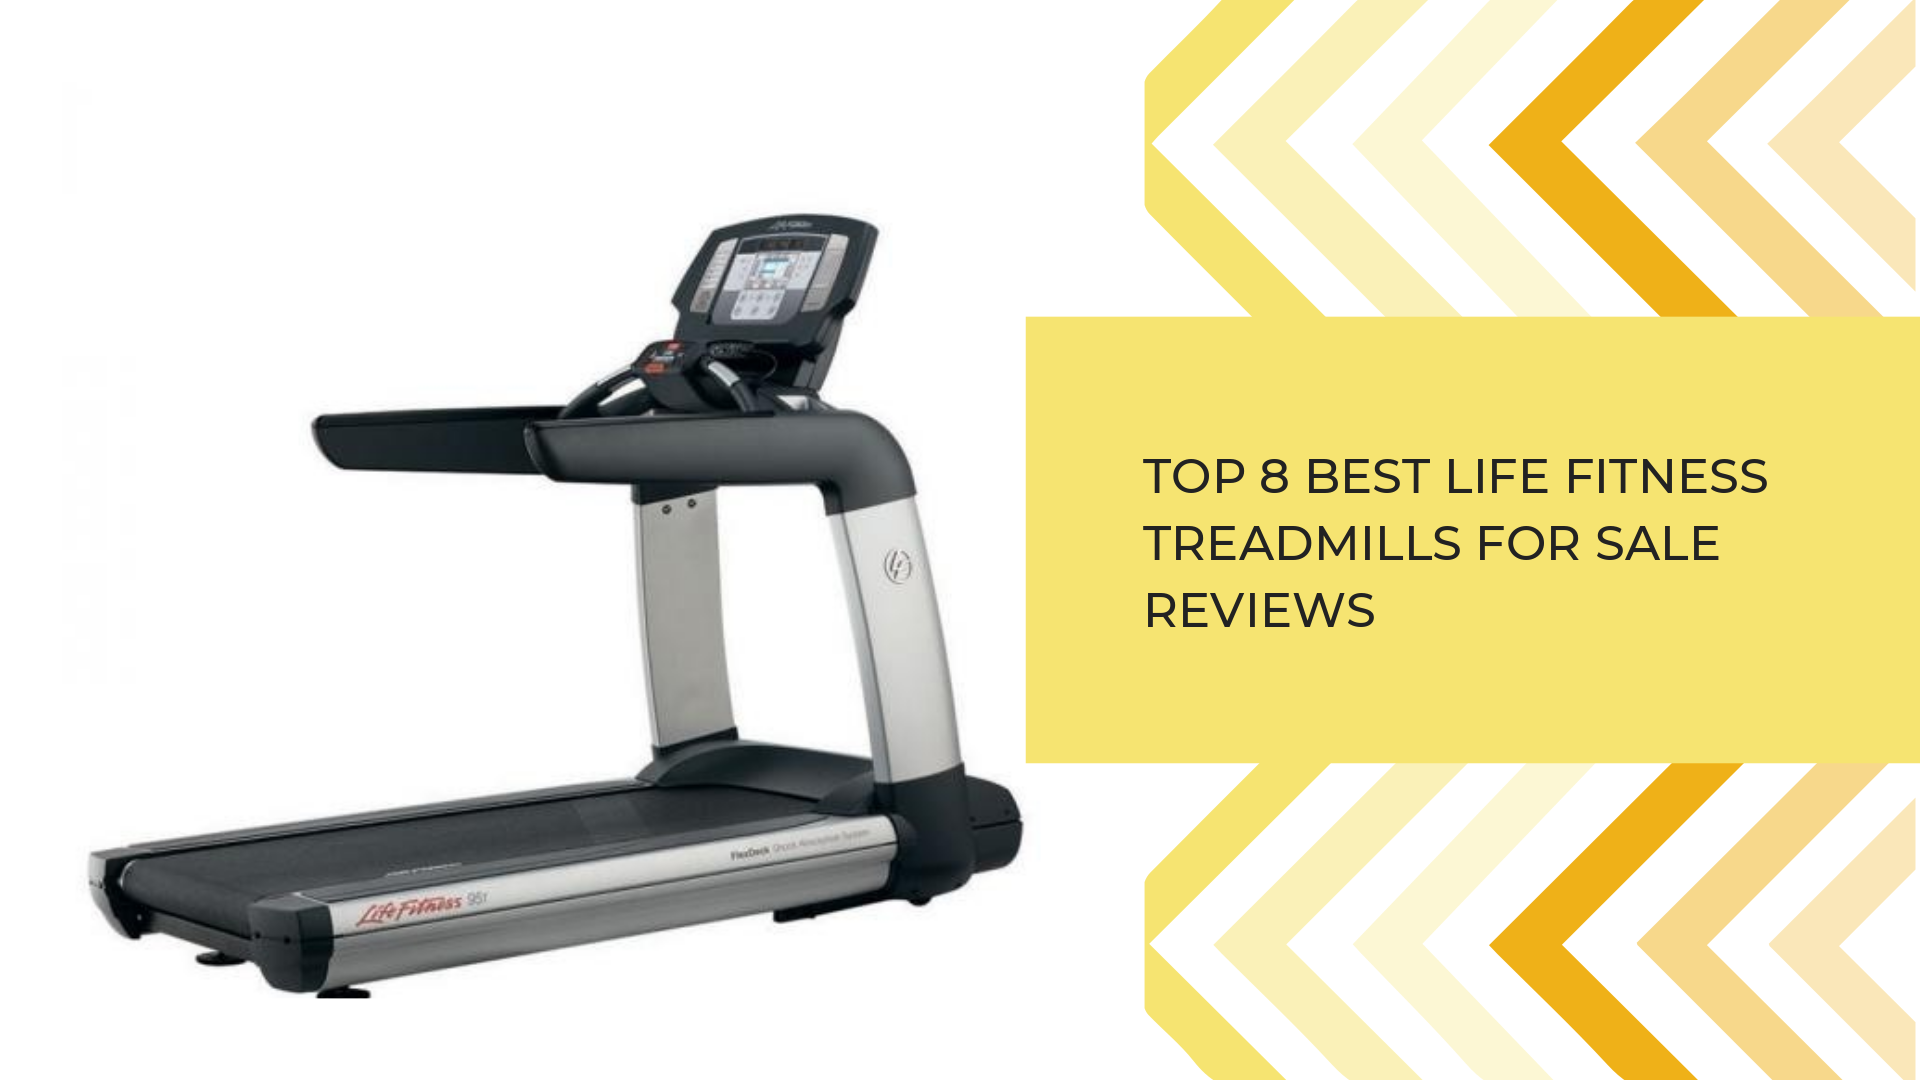 Top 8 Best Life Fitness Treadmills For Sale Reviews